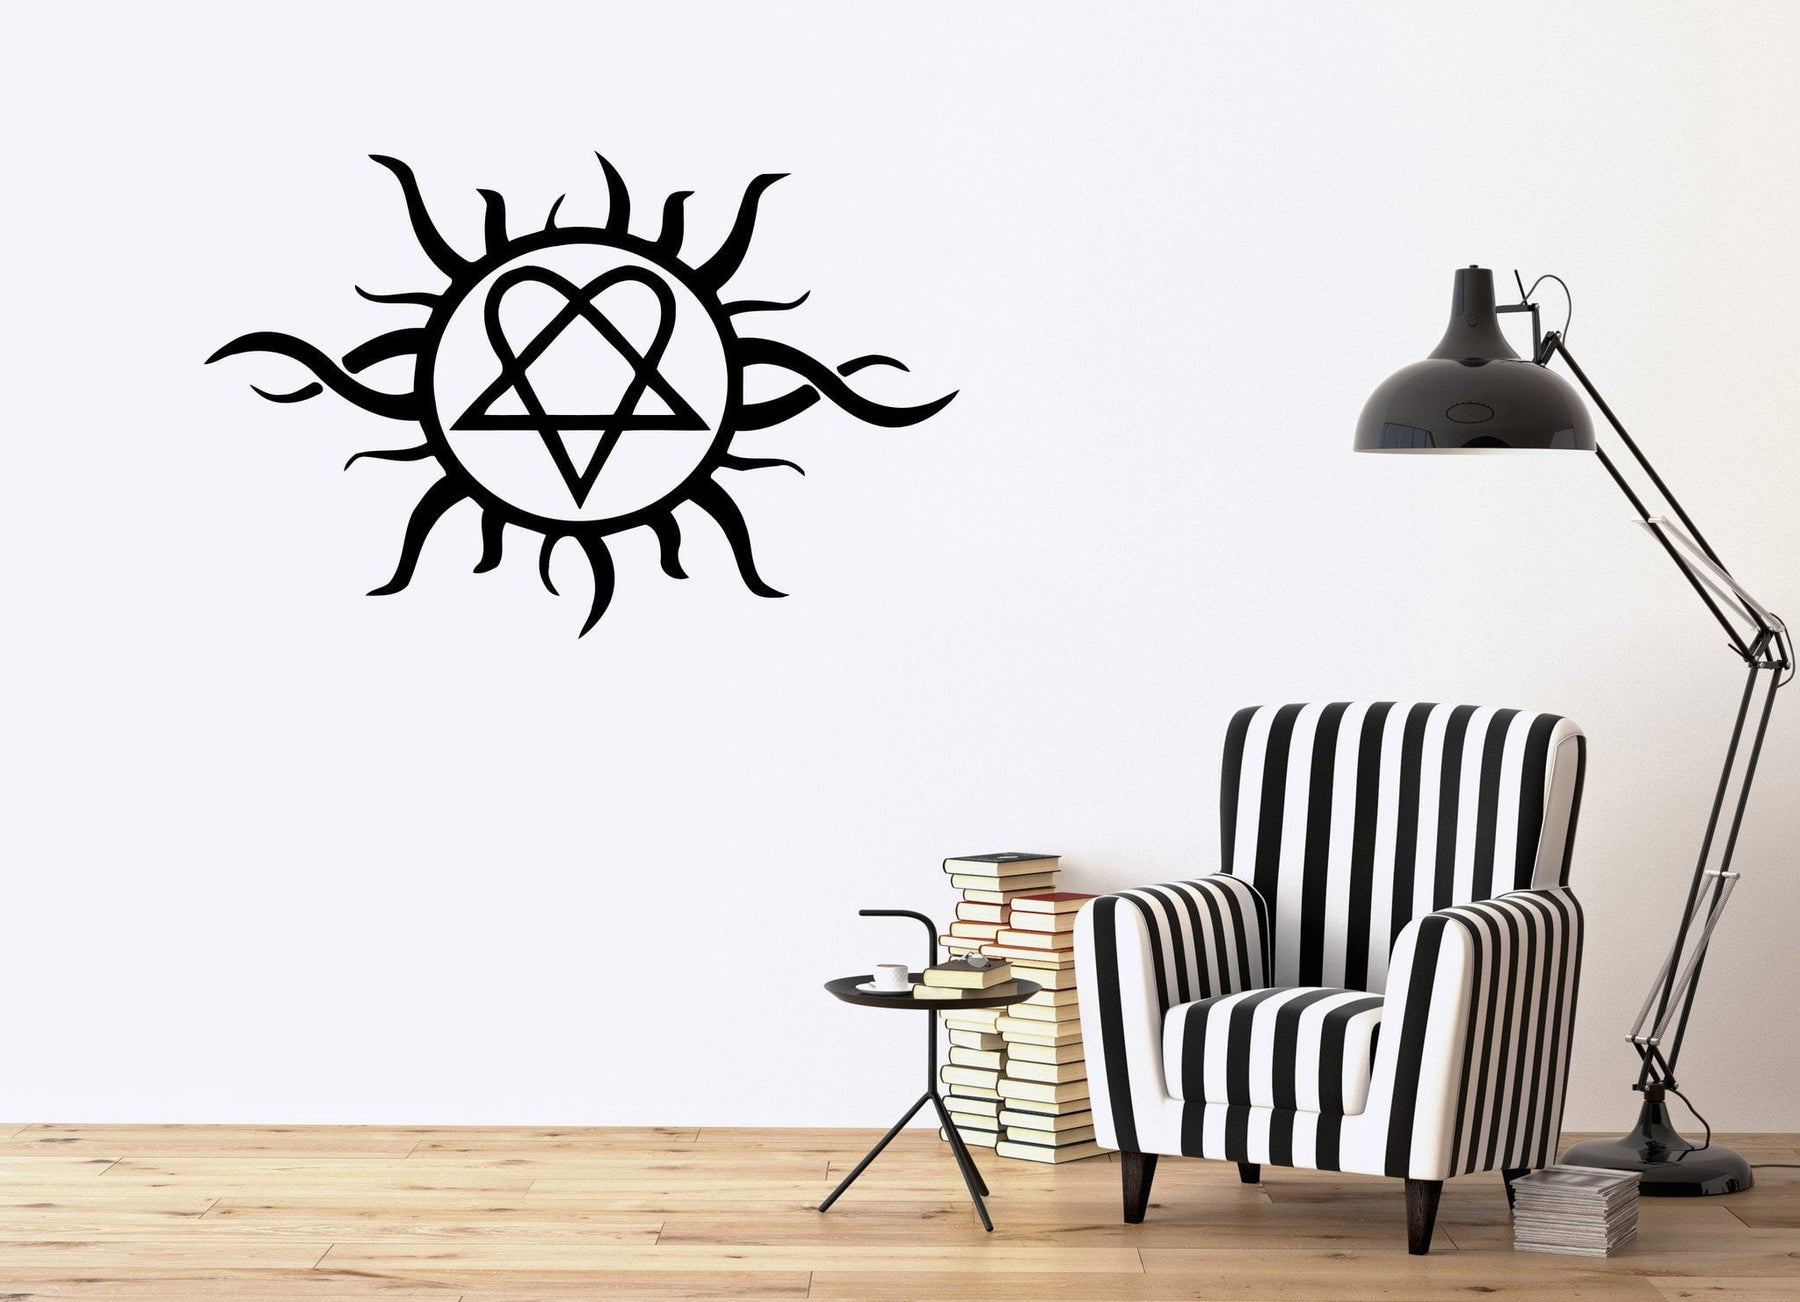 Tribal Sun Design Decorative Flames Ornament Wall Mural Vinyl Art Sticker Unique Gift M325